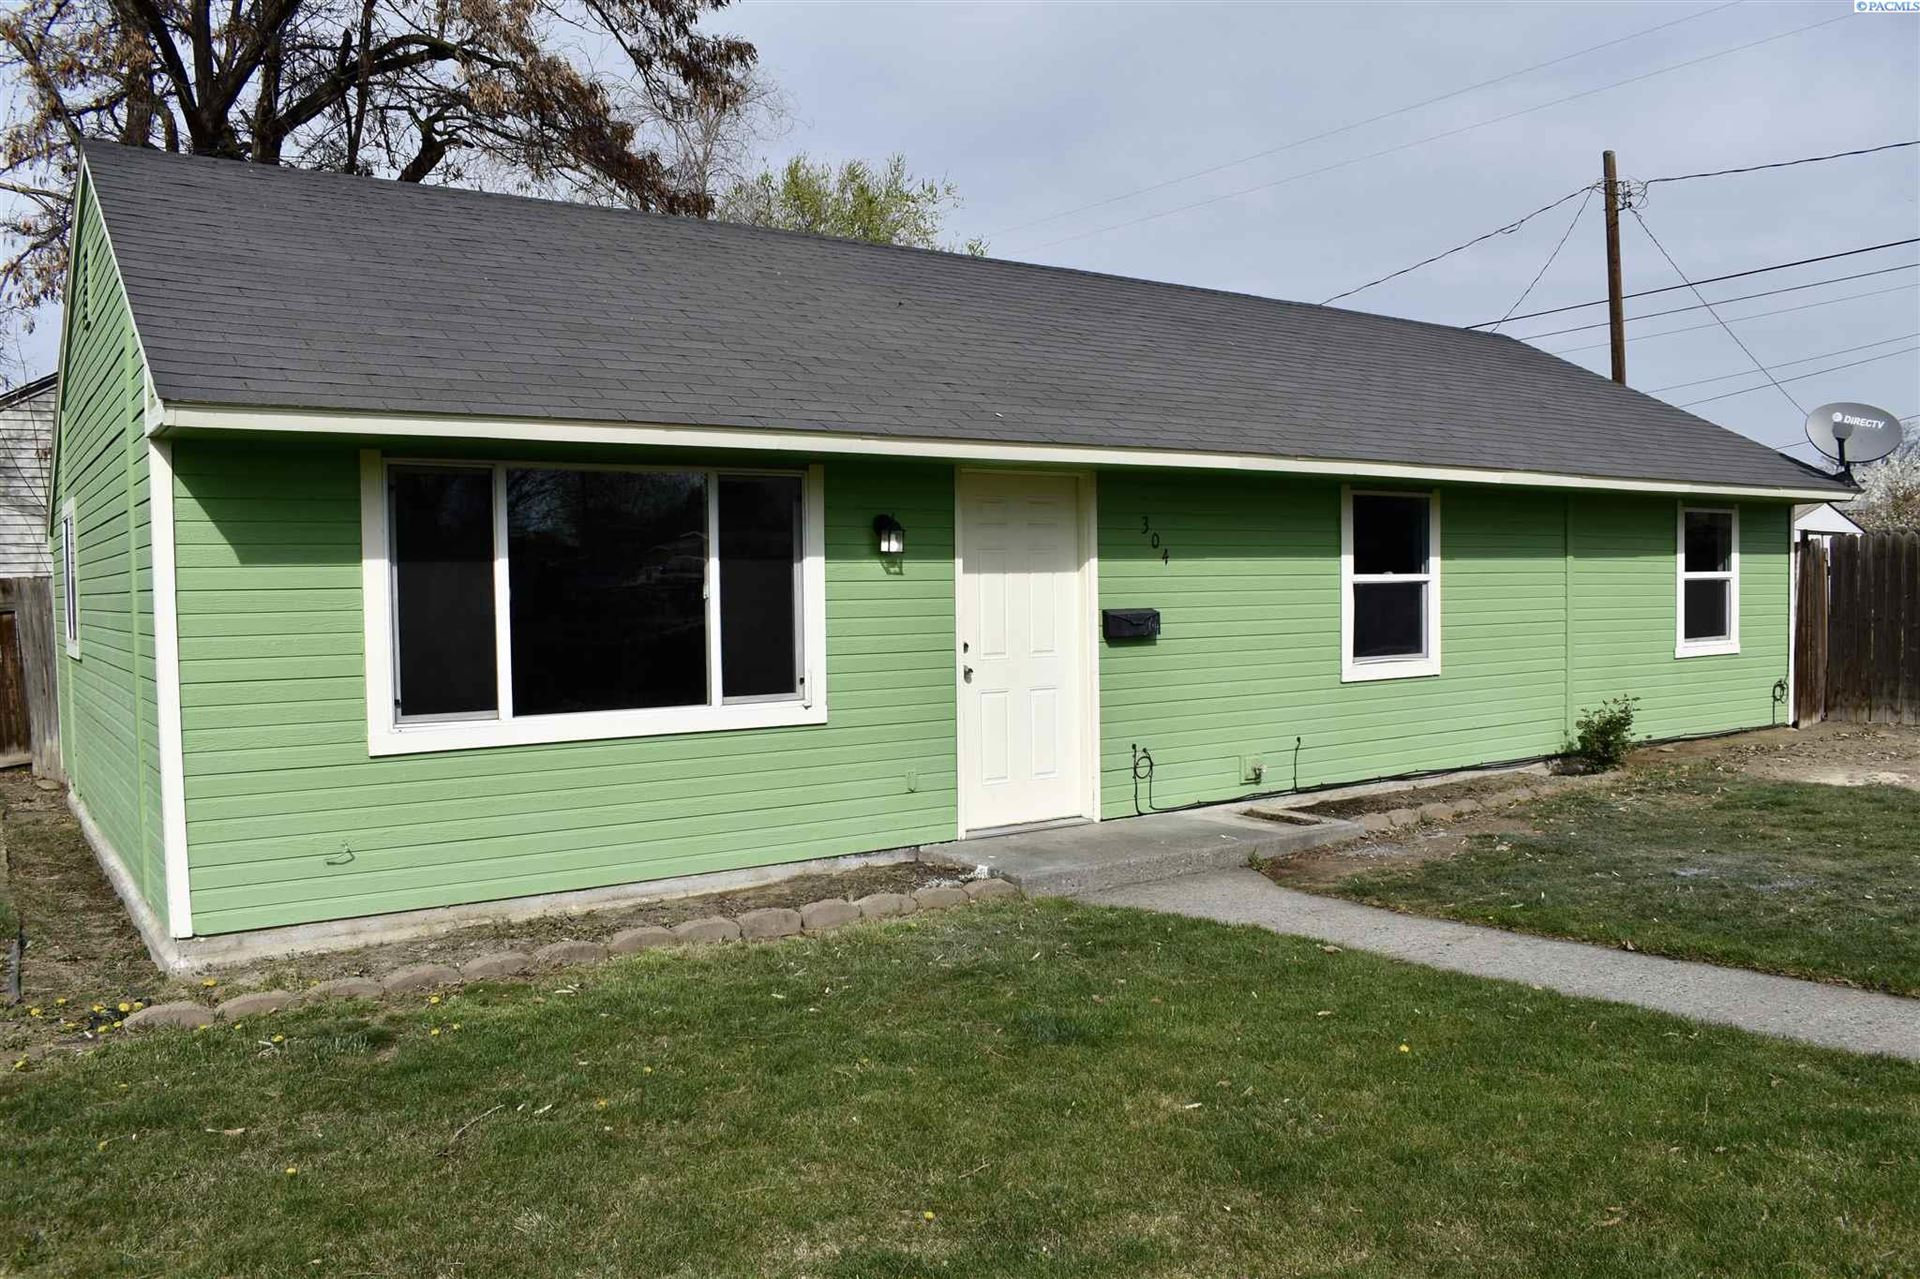 Photo of 304 N 19th Ave, Pasco, WA 99301 (MLS # 252844)